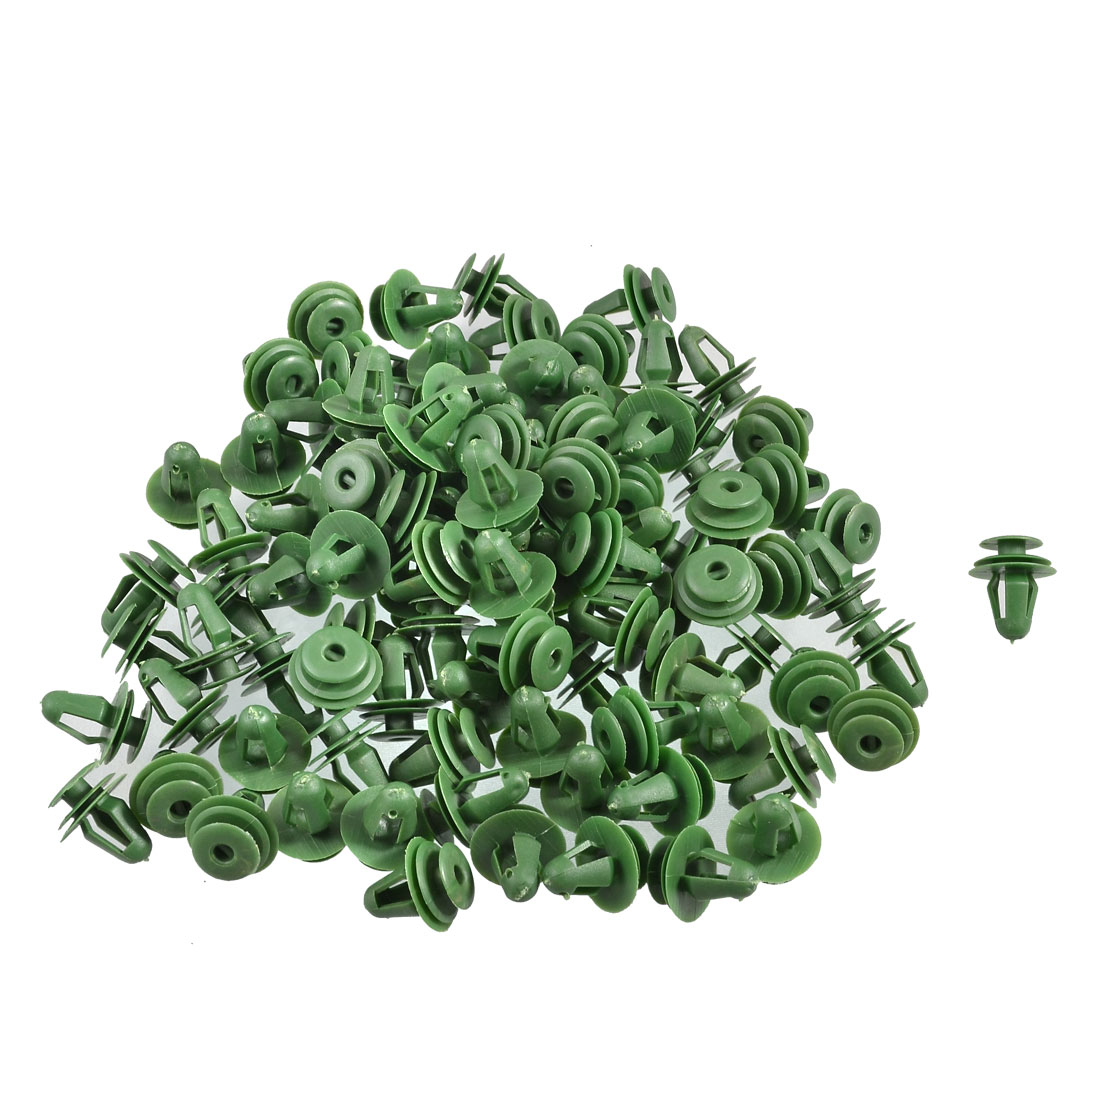 100 x Green Plastic Rivets Retainer Clip 17x14x10mm for Car Bumper Fender